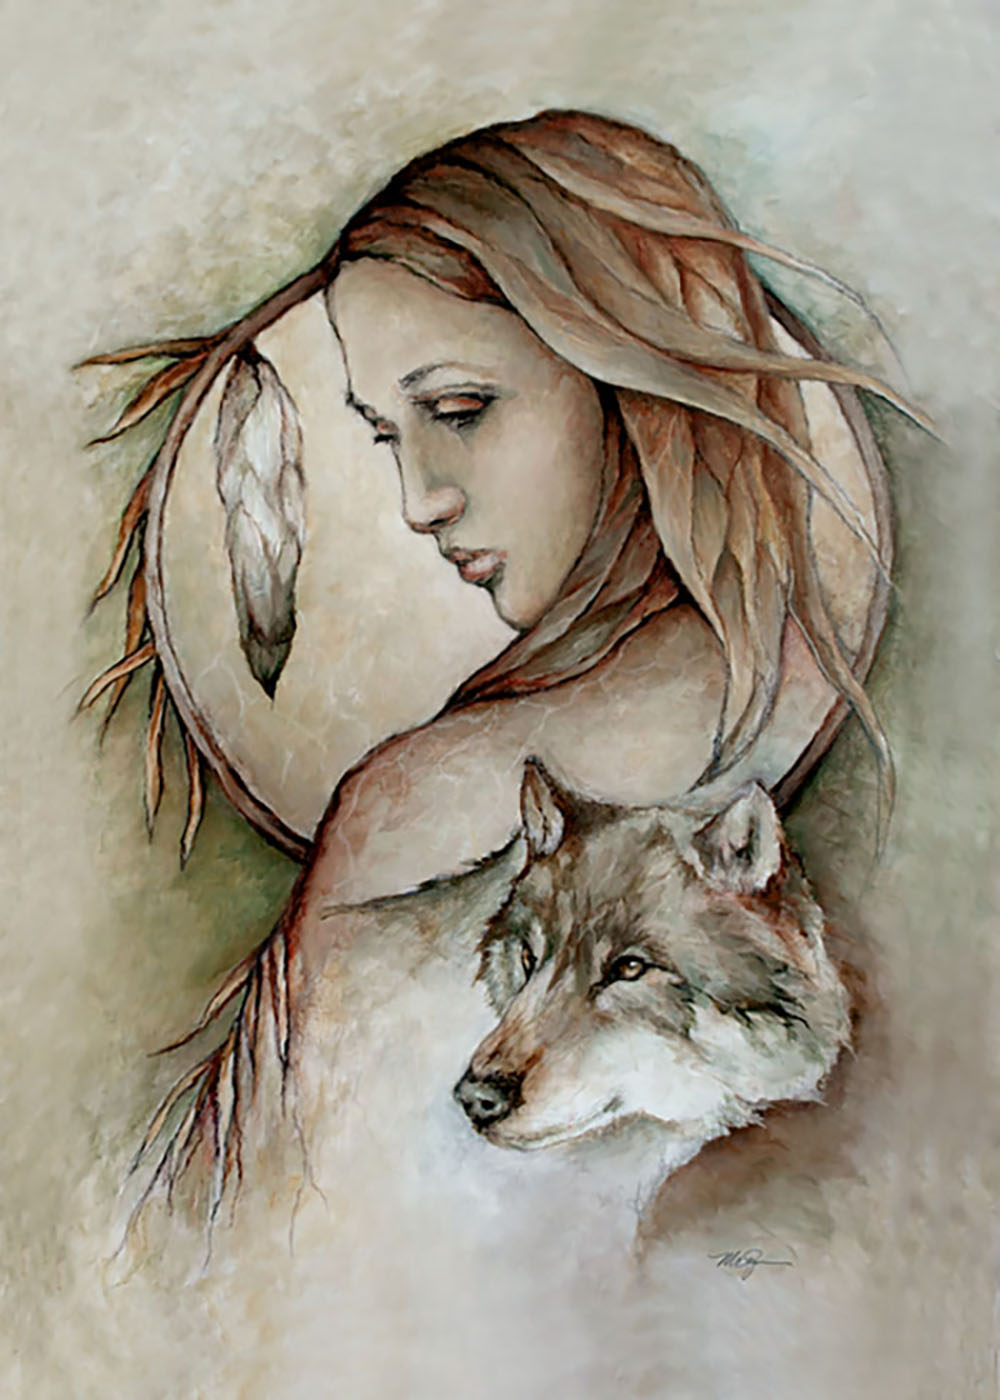 Spirit of the Wolf painting by Mary Zins